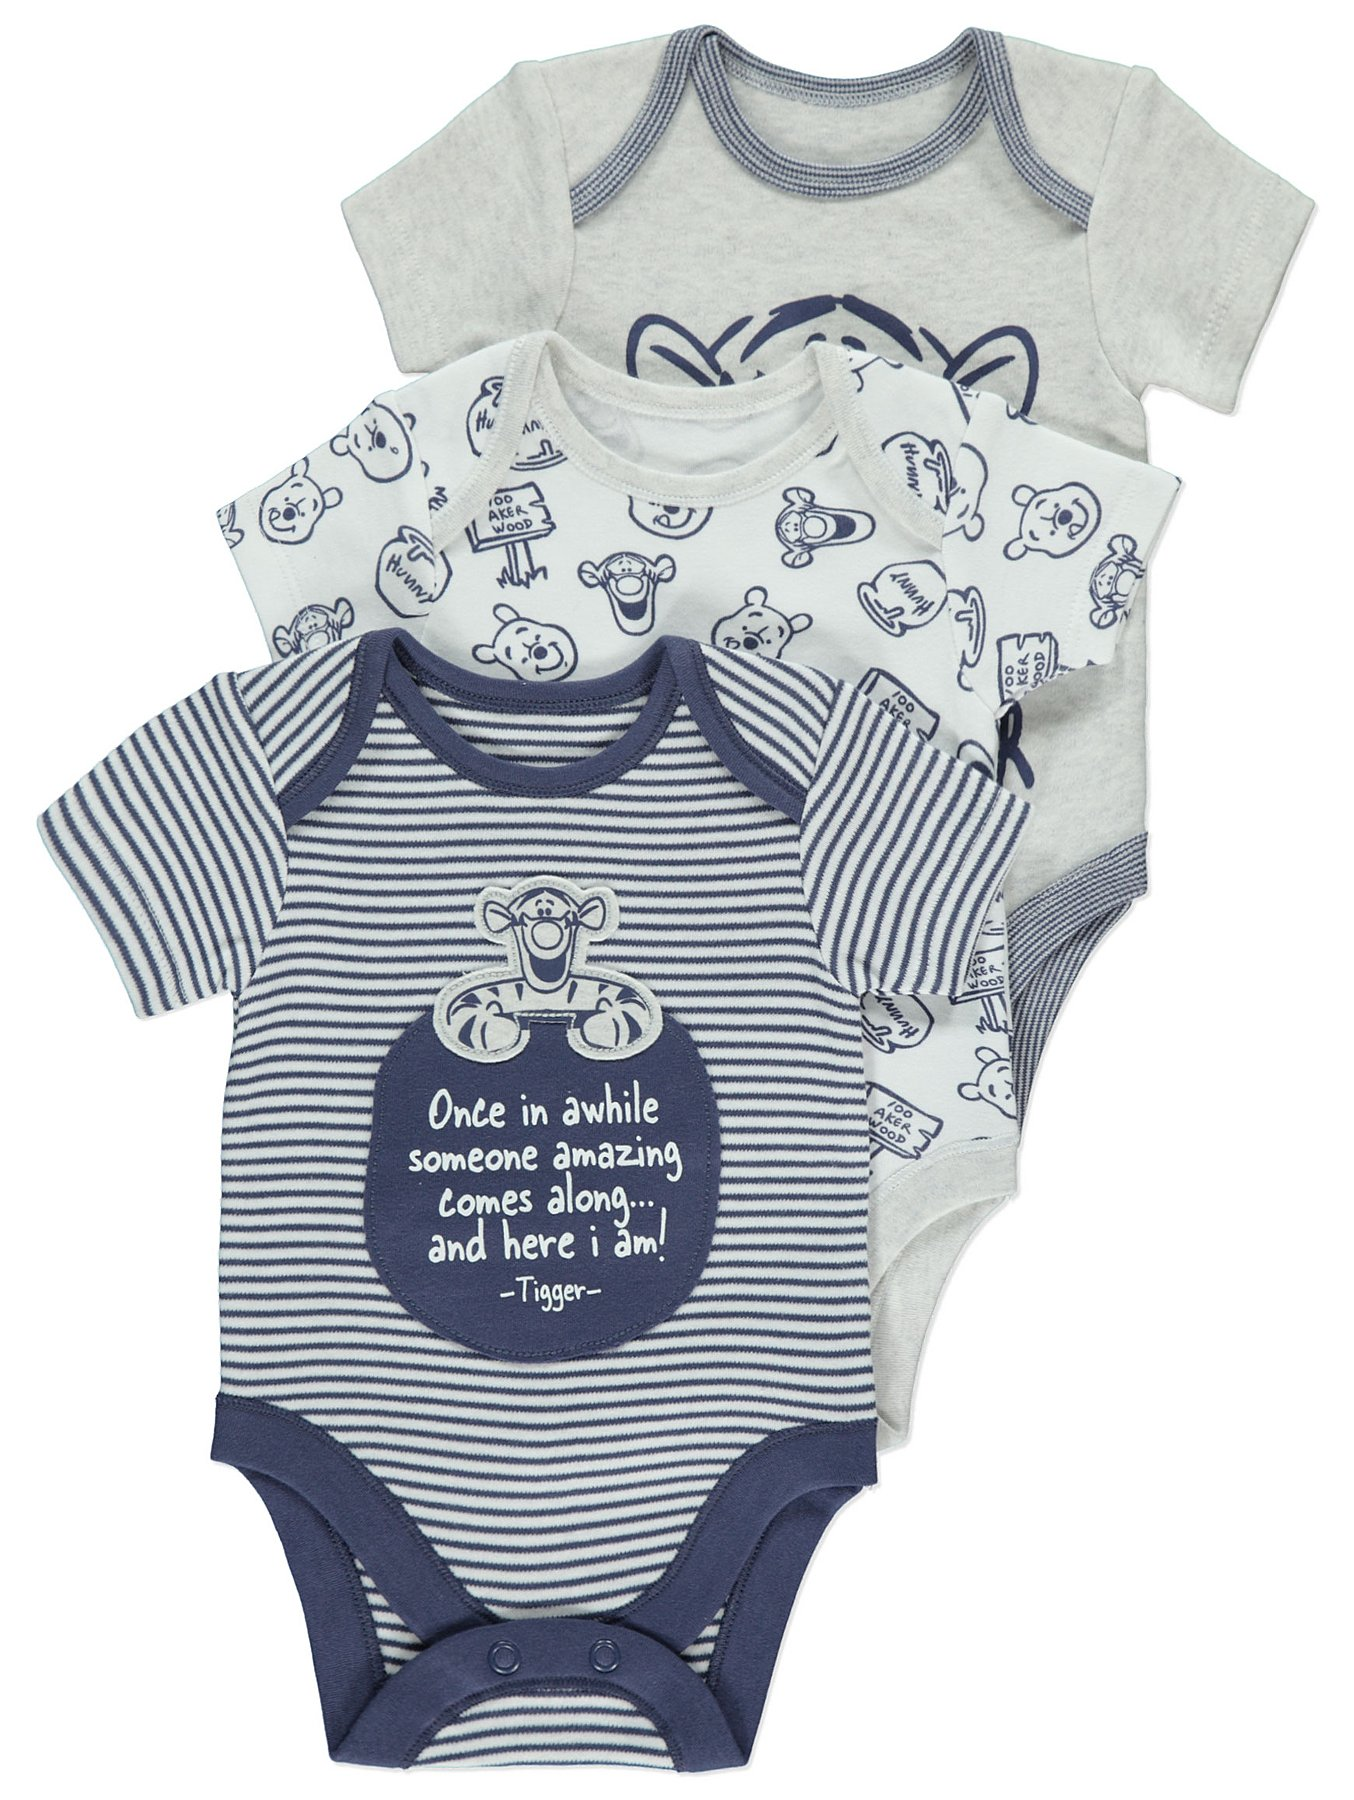 2a6bf5542 Disney Tigger Bodysuits 3 Pack | Baby | George